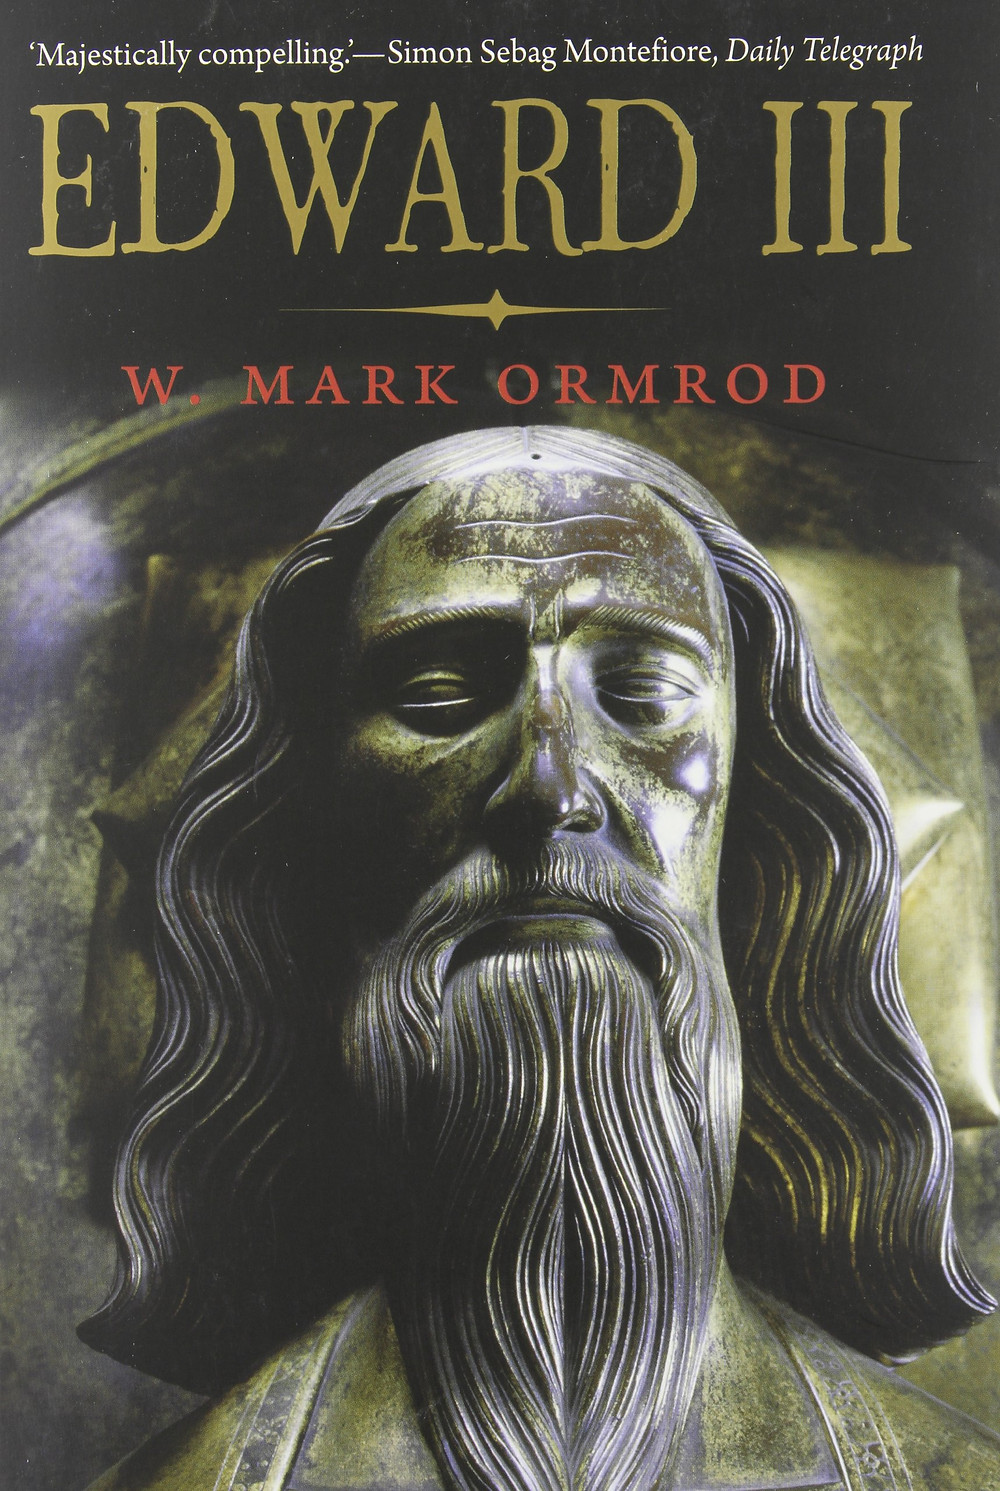 Edward III Book Recommendation - Free worldwide delivery with Book Depository